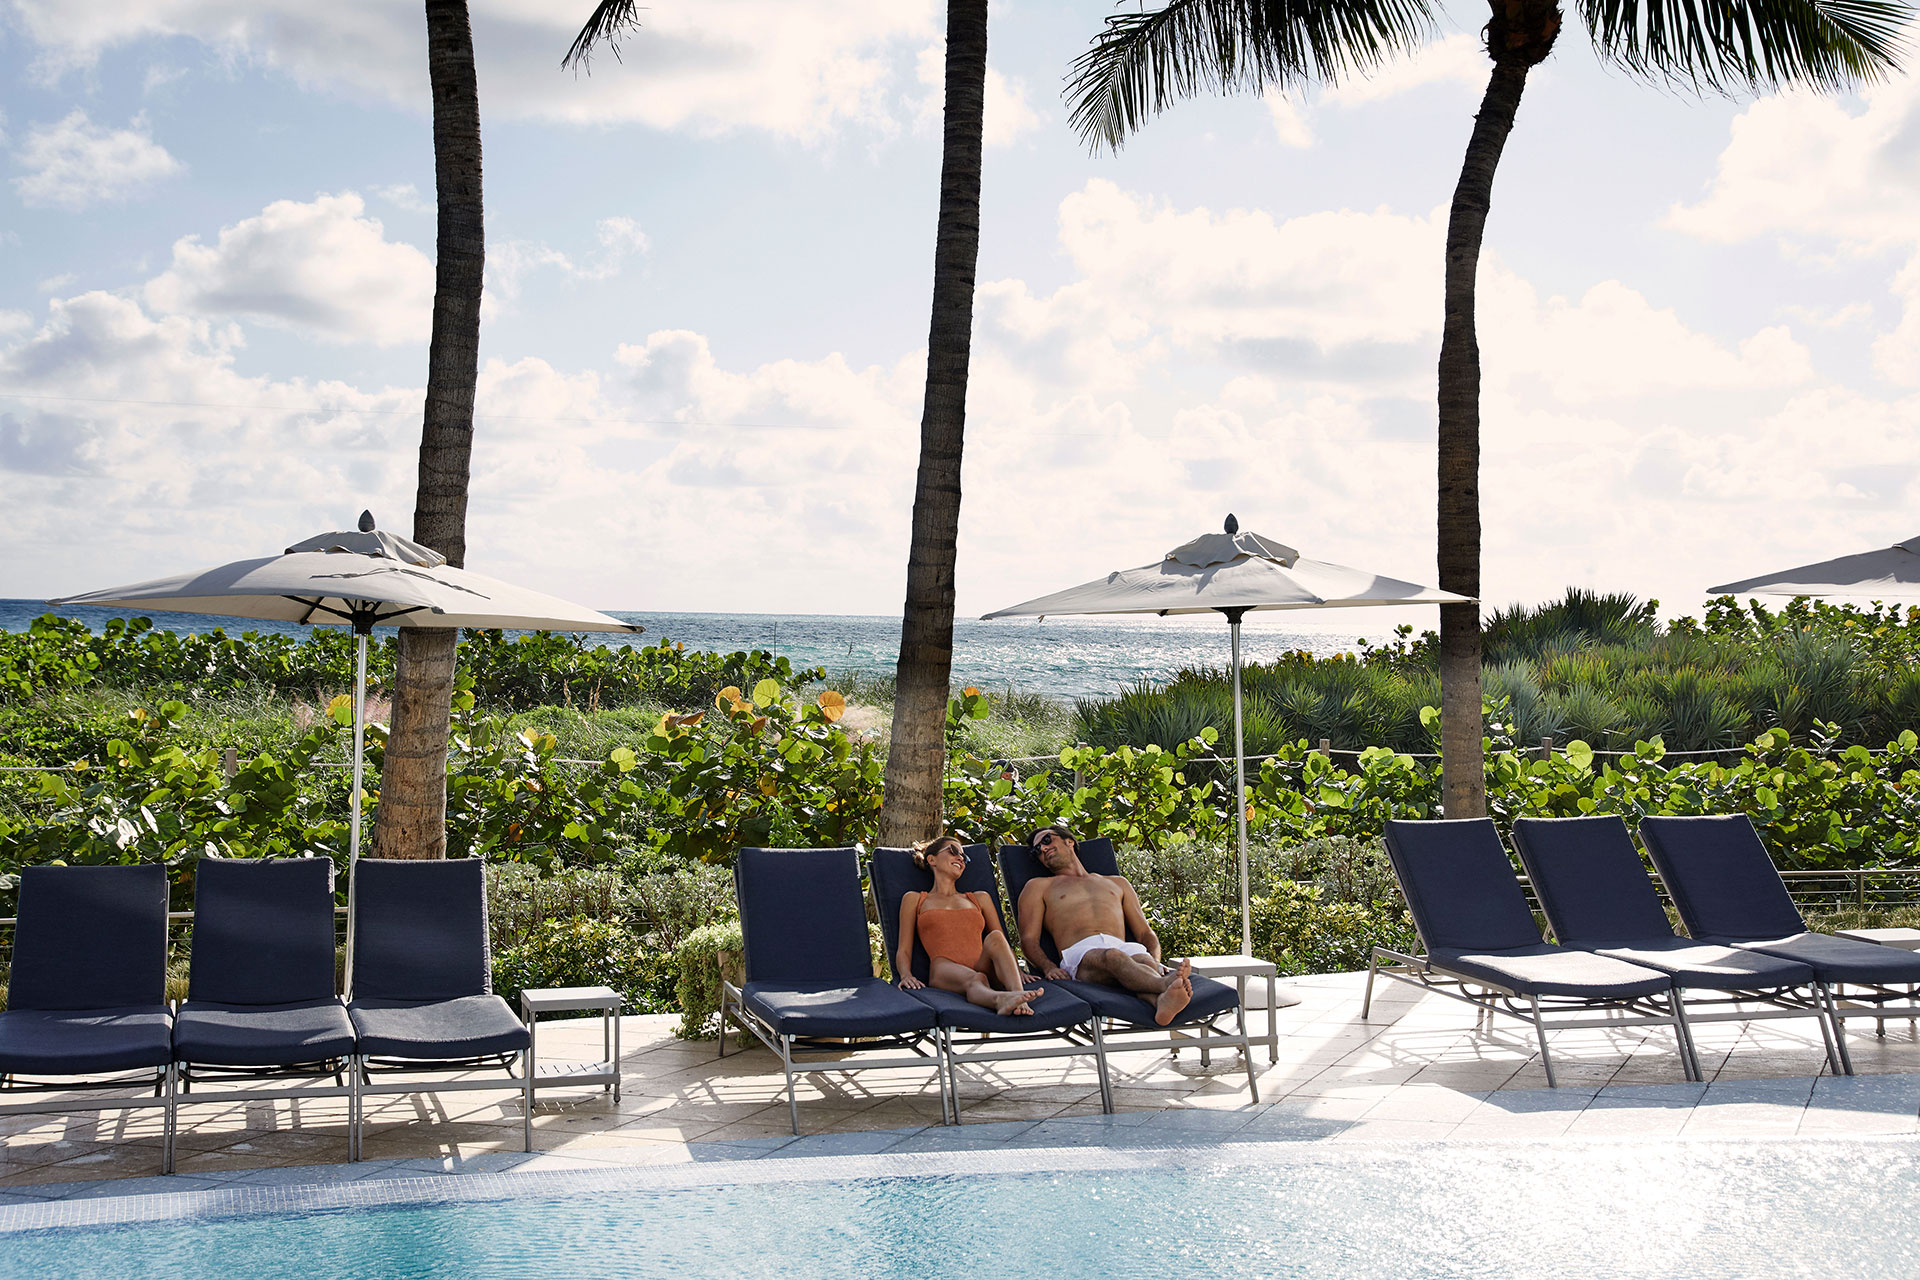 a man and a woman in swimwear lounge of blue pool chairs next to a pool. They are under a white umbrella. In the background is greenery and palm trees. The ocean peaks out in the distance.